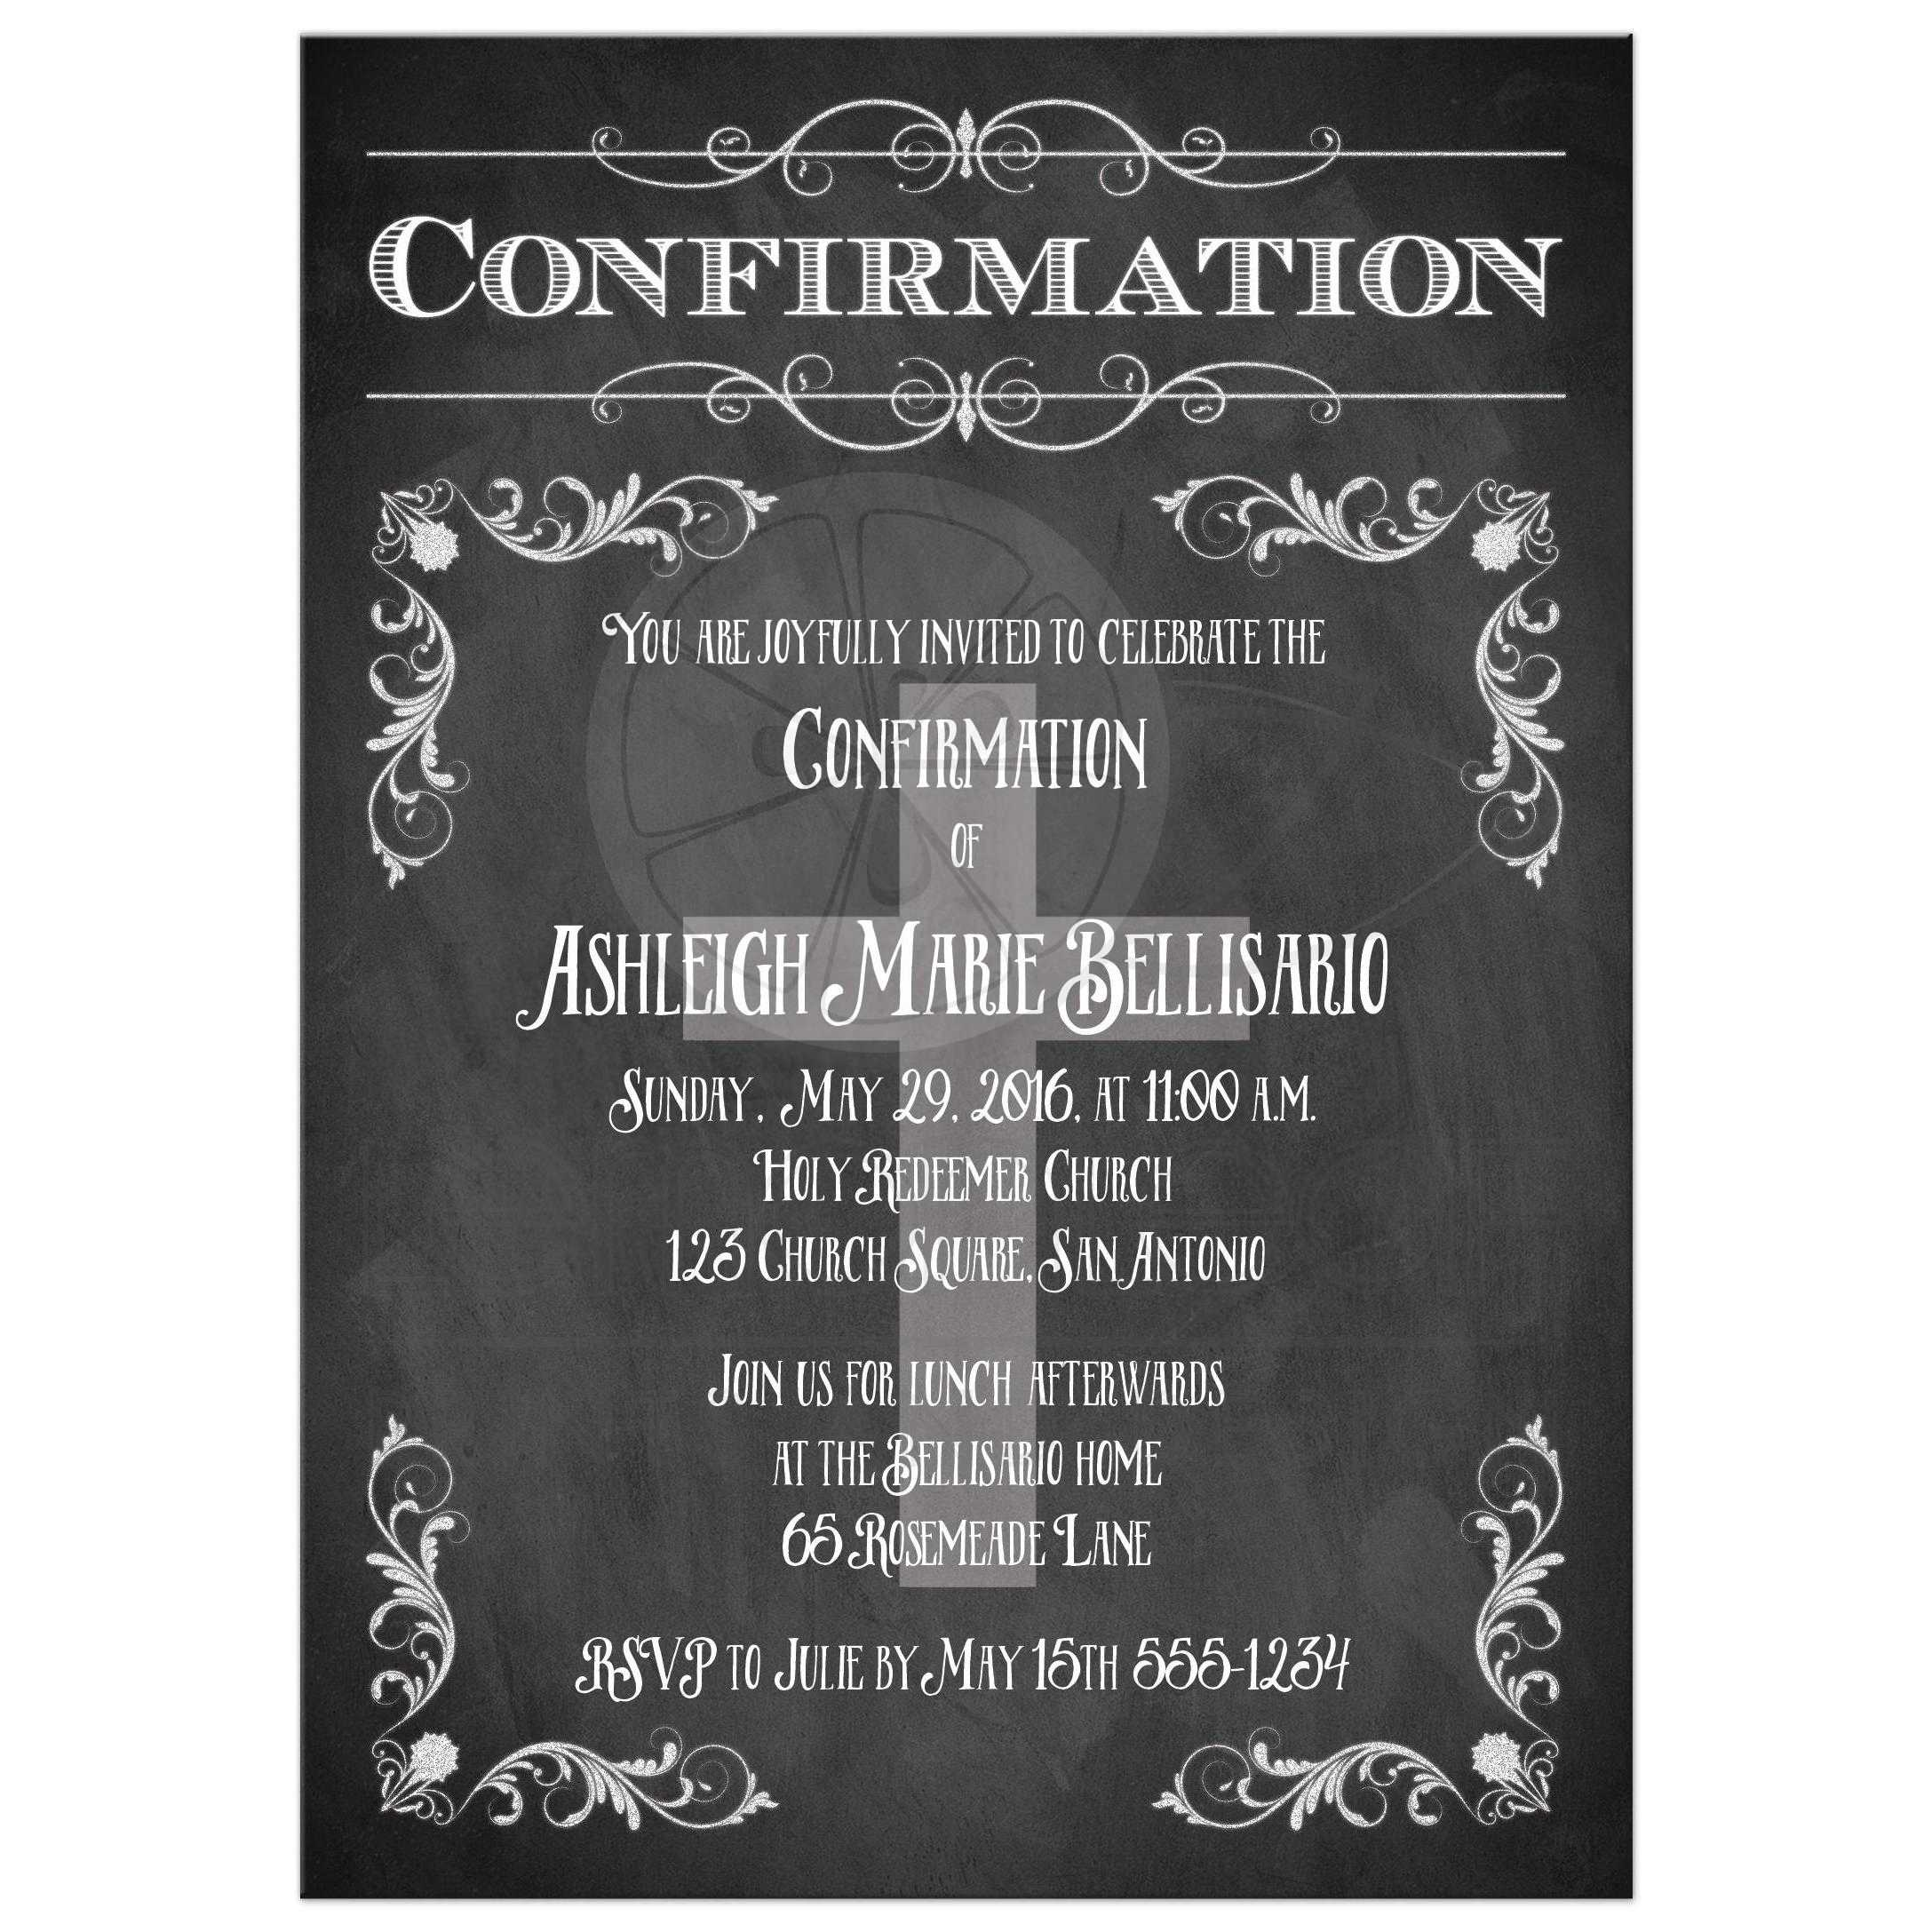 Top Confirmation Invitation | Chalkboard | Flourishes | Cross VY72